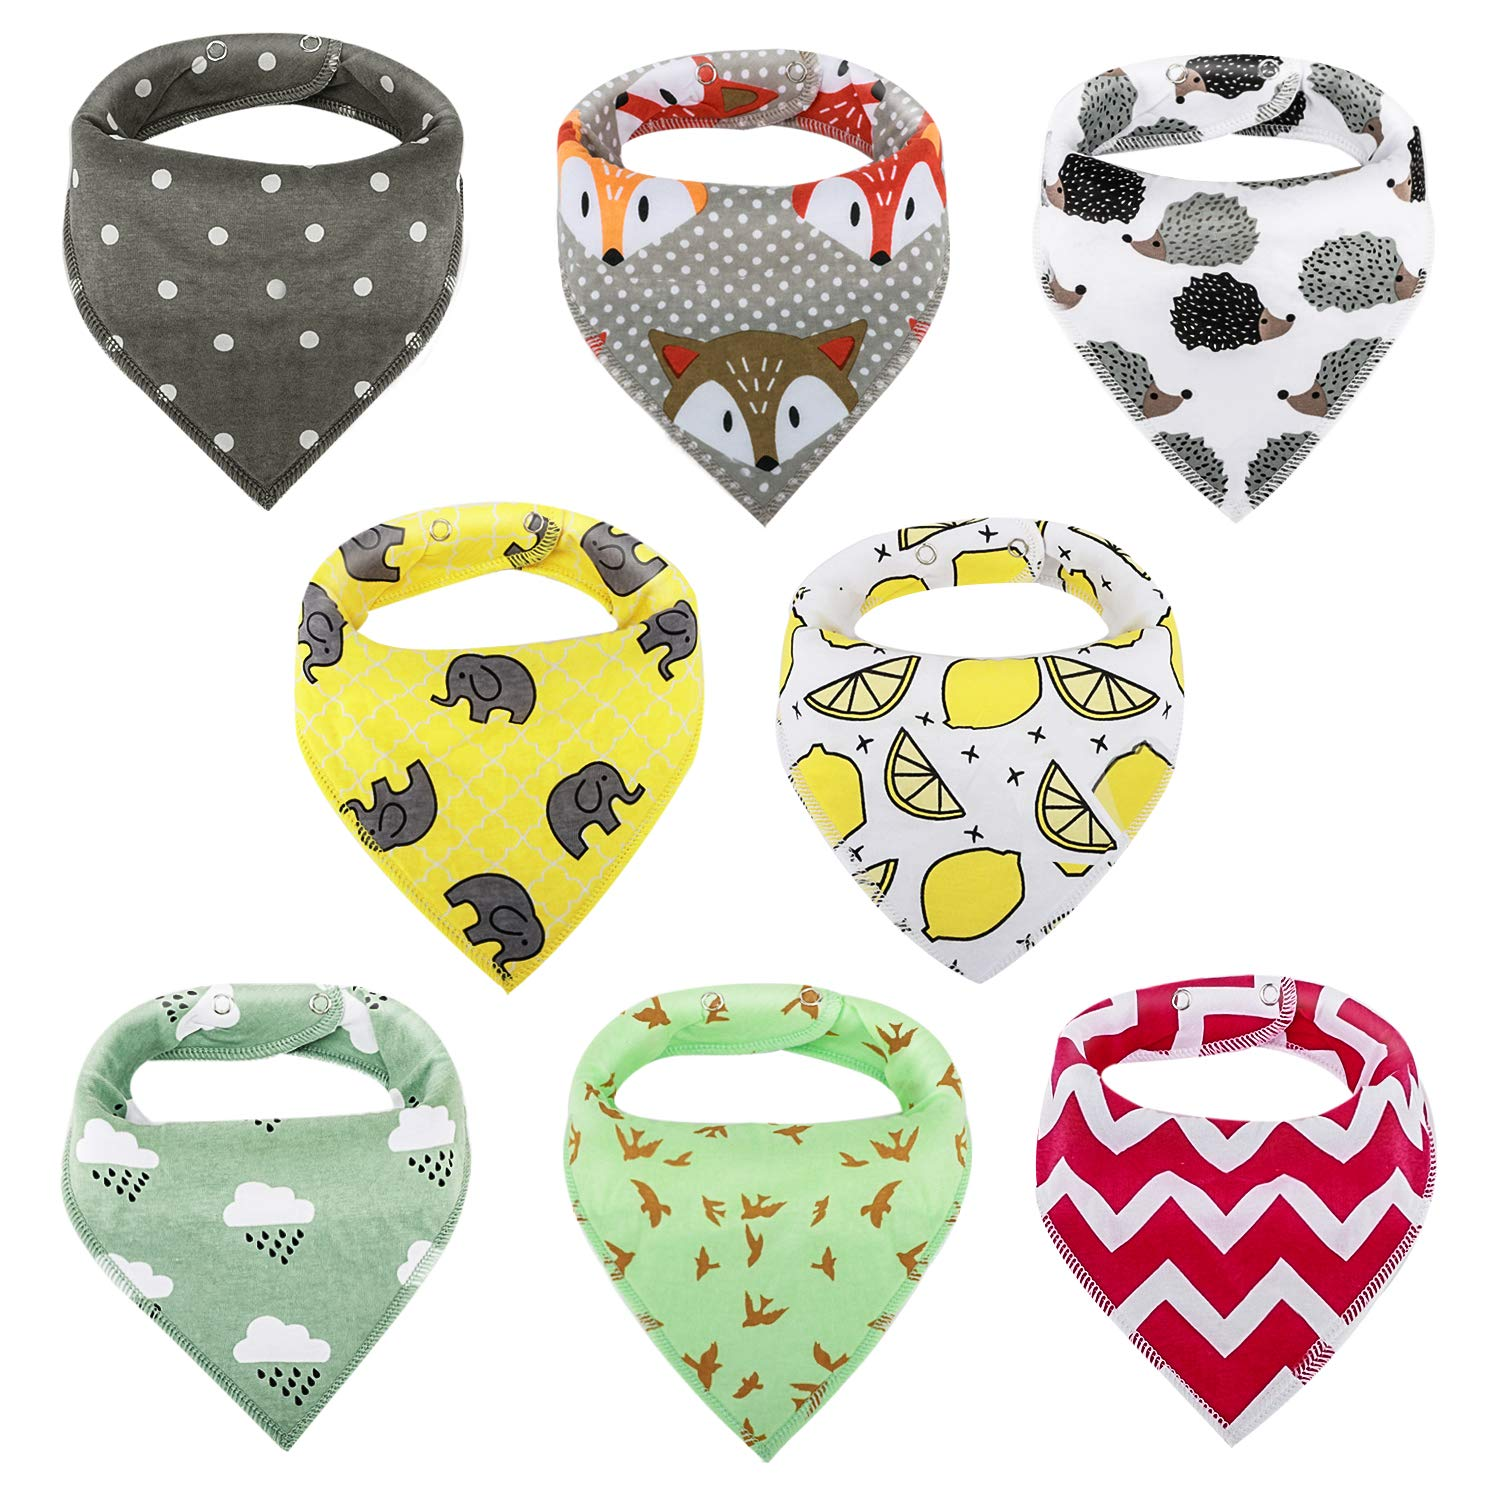 Zooawa 8 Pack Baby Bandana Drool Bibs, Soft Triangle Teething Organic Cotton Drool Bibs Set with Adjustable Snap for Baby Girls Boys, Multi-colors